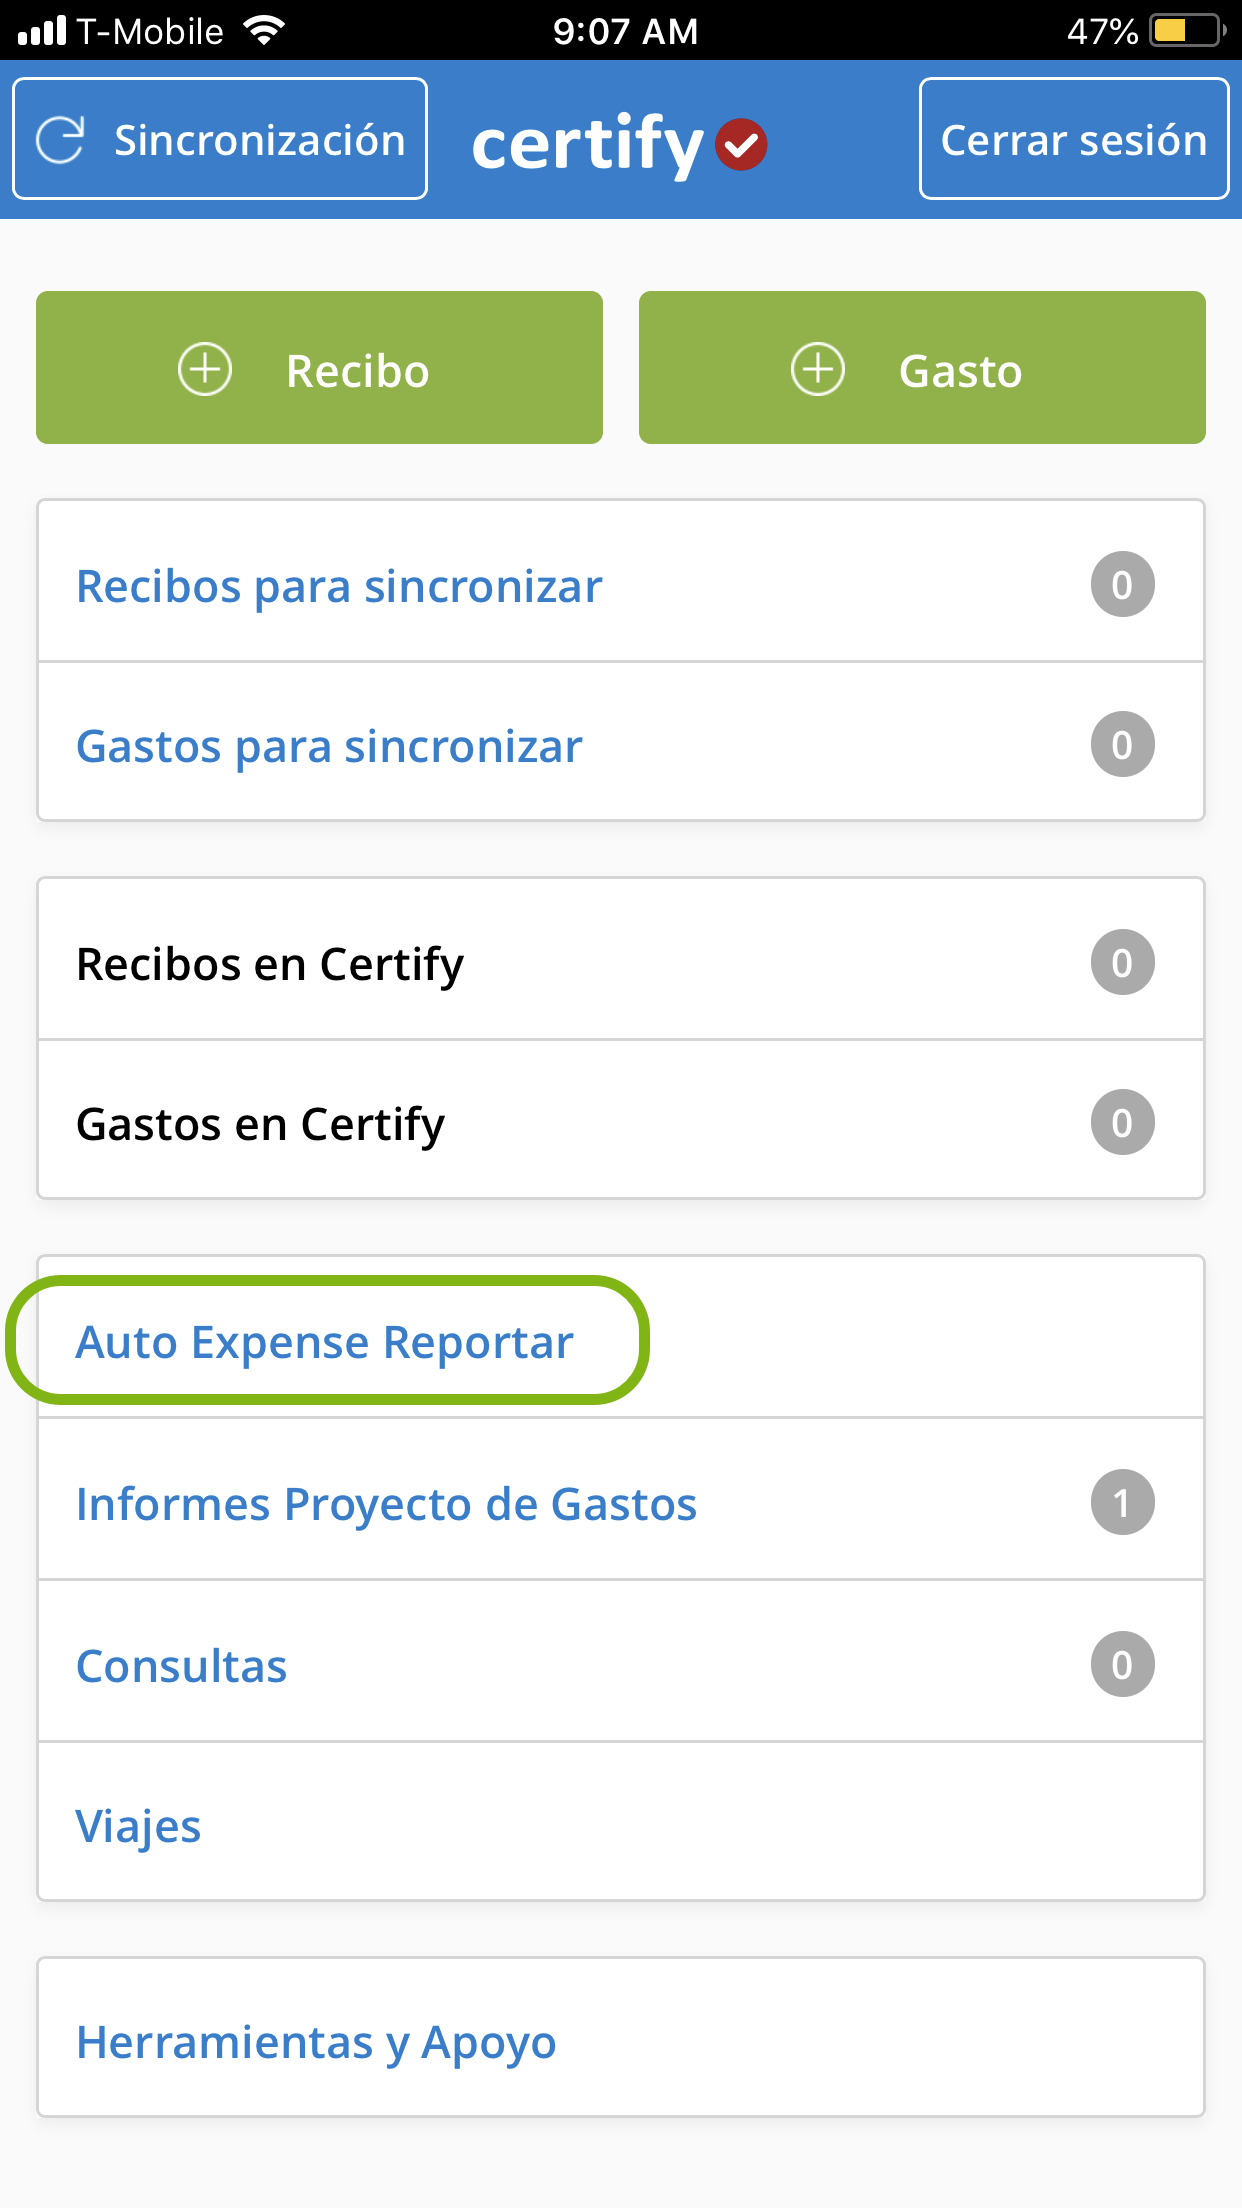 Creating_a_Report_on_Mobile_1.PNG